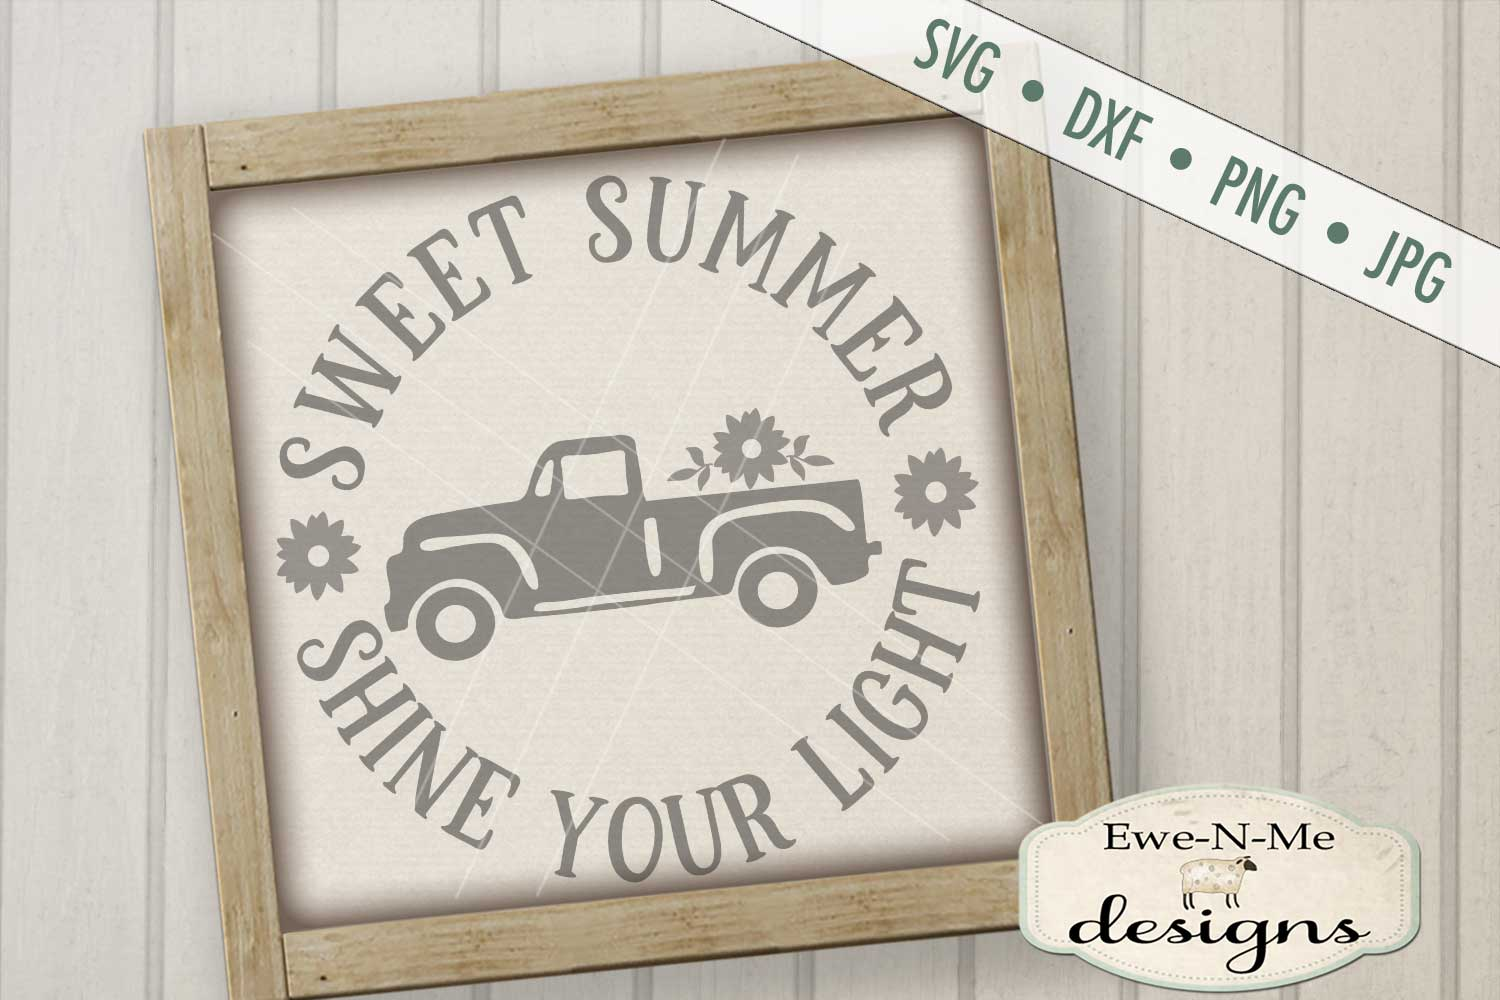 Sweet Summer Shine Your Light Vintage Truck SVG DXF Files example image 1